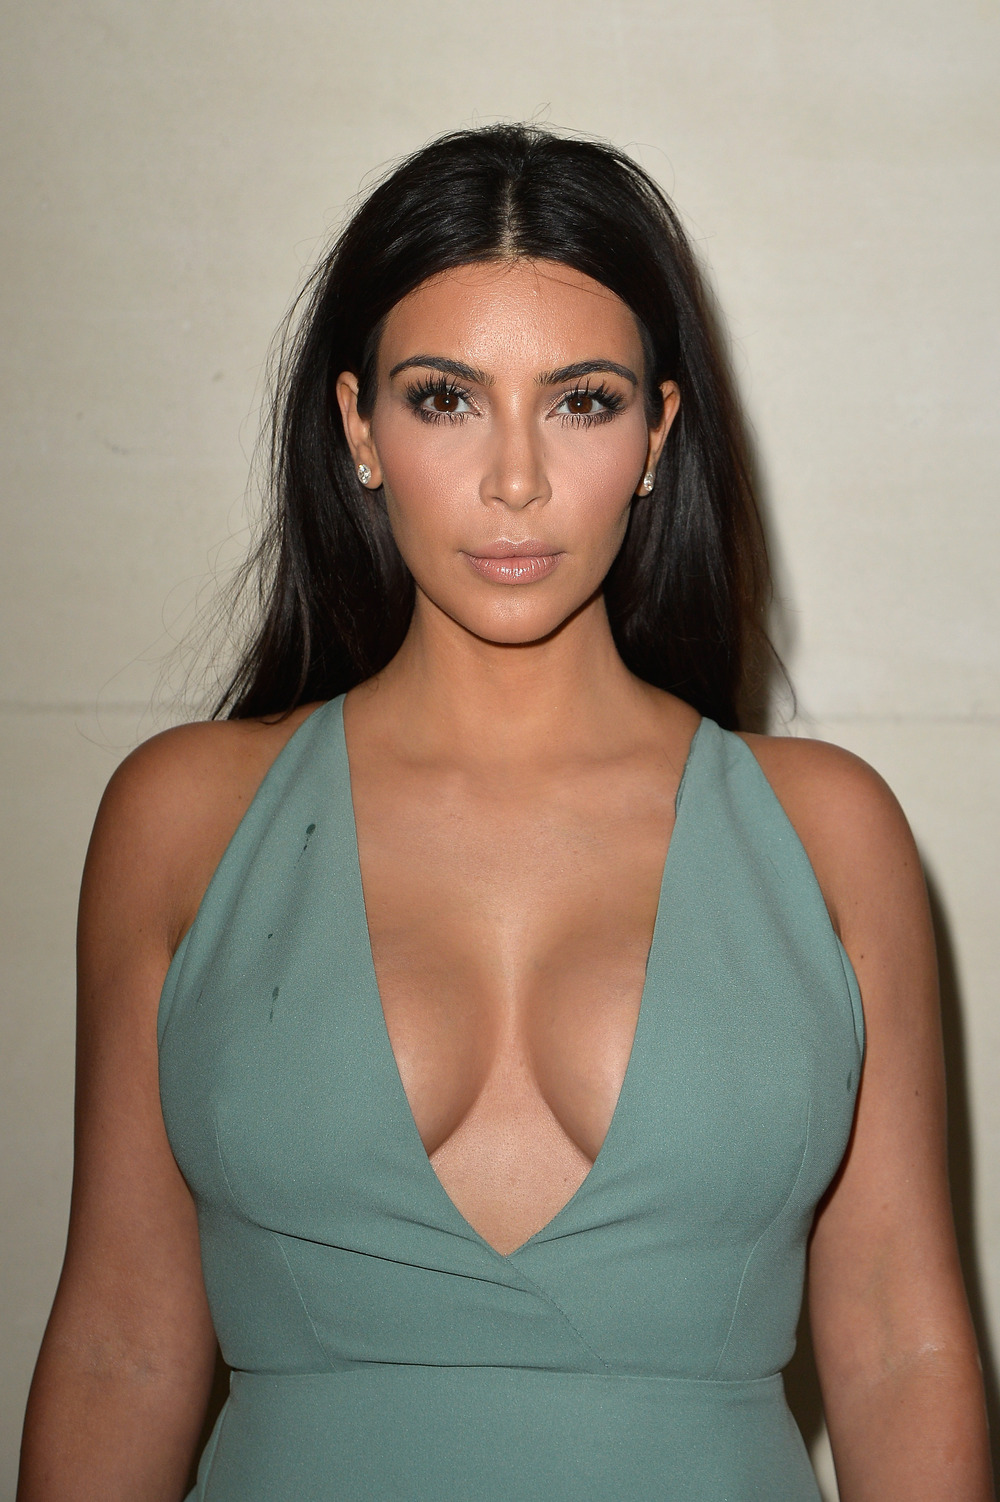 Kim Kardashian is Worrying About Her Weight Again, Despite Massive Slimdown